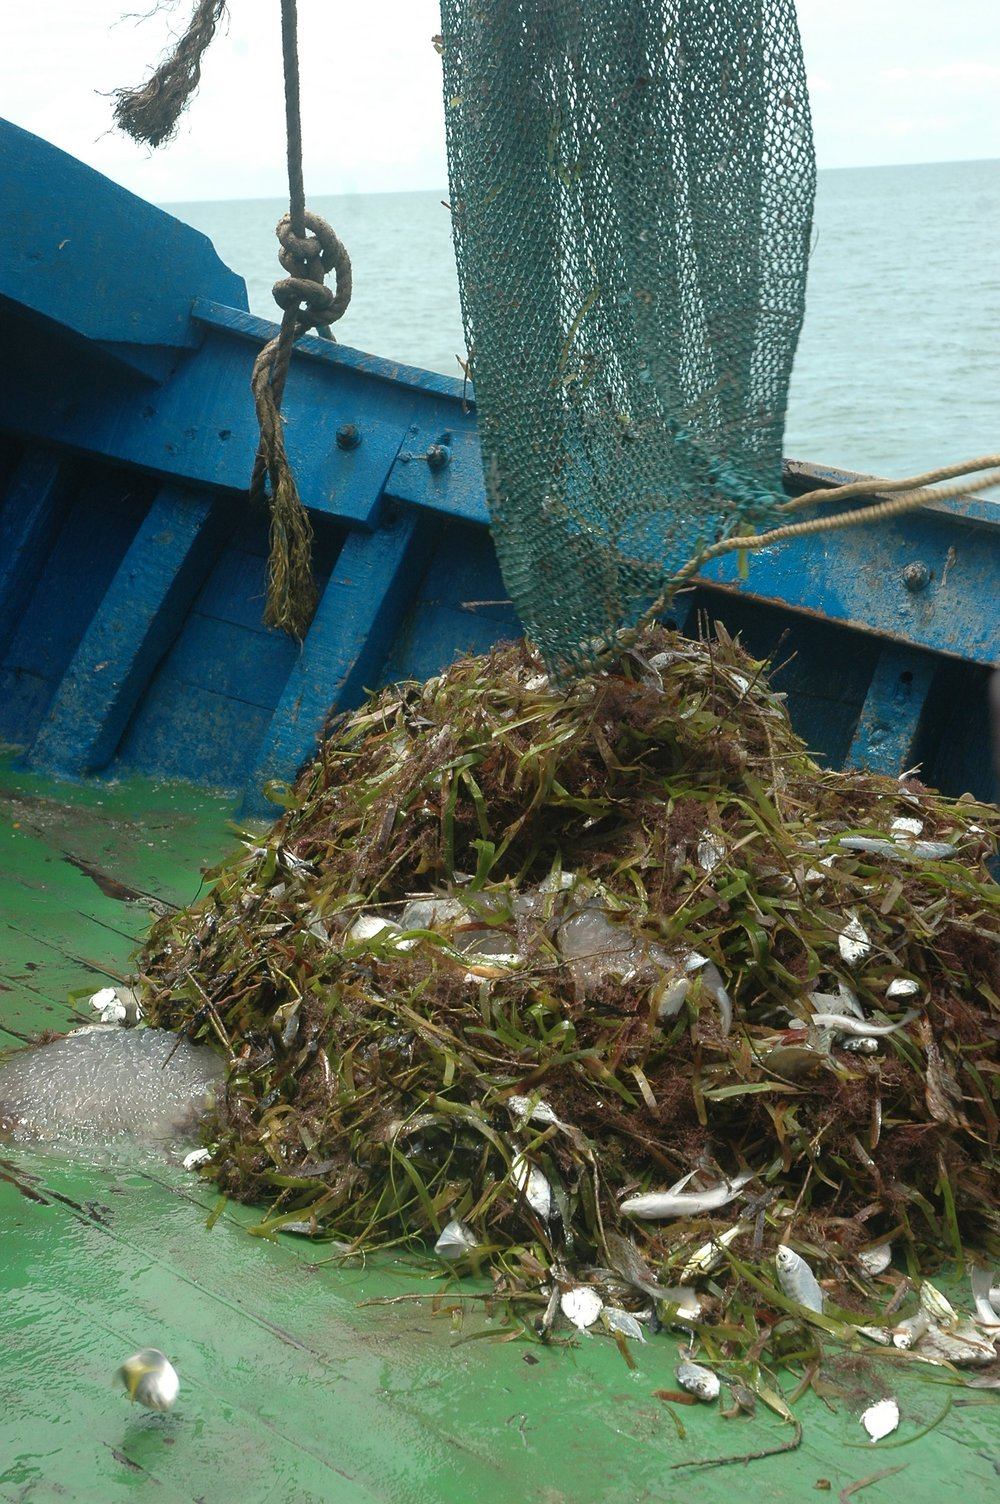 The catch was composed of mainly seaweed, a couple of seahorses and approximately five kilograms of edible fish.  Photo by Tanvi Vaidyanathan/Project Seahorse.